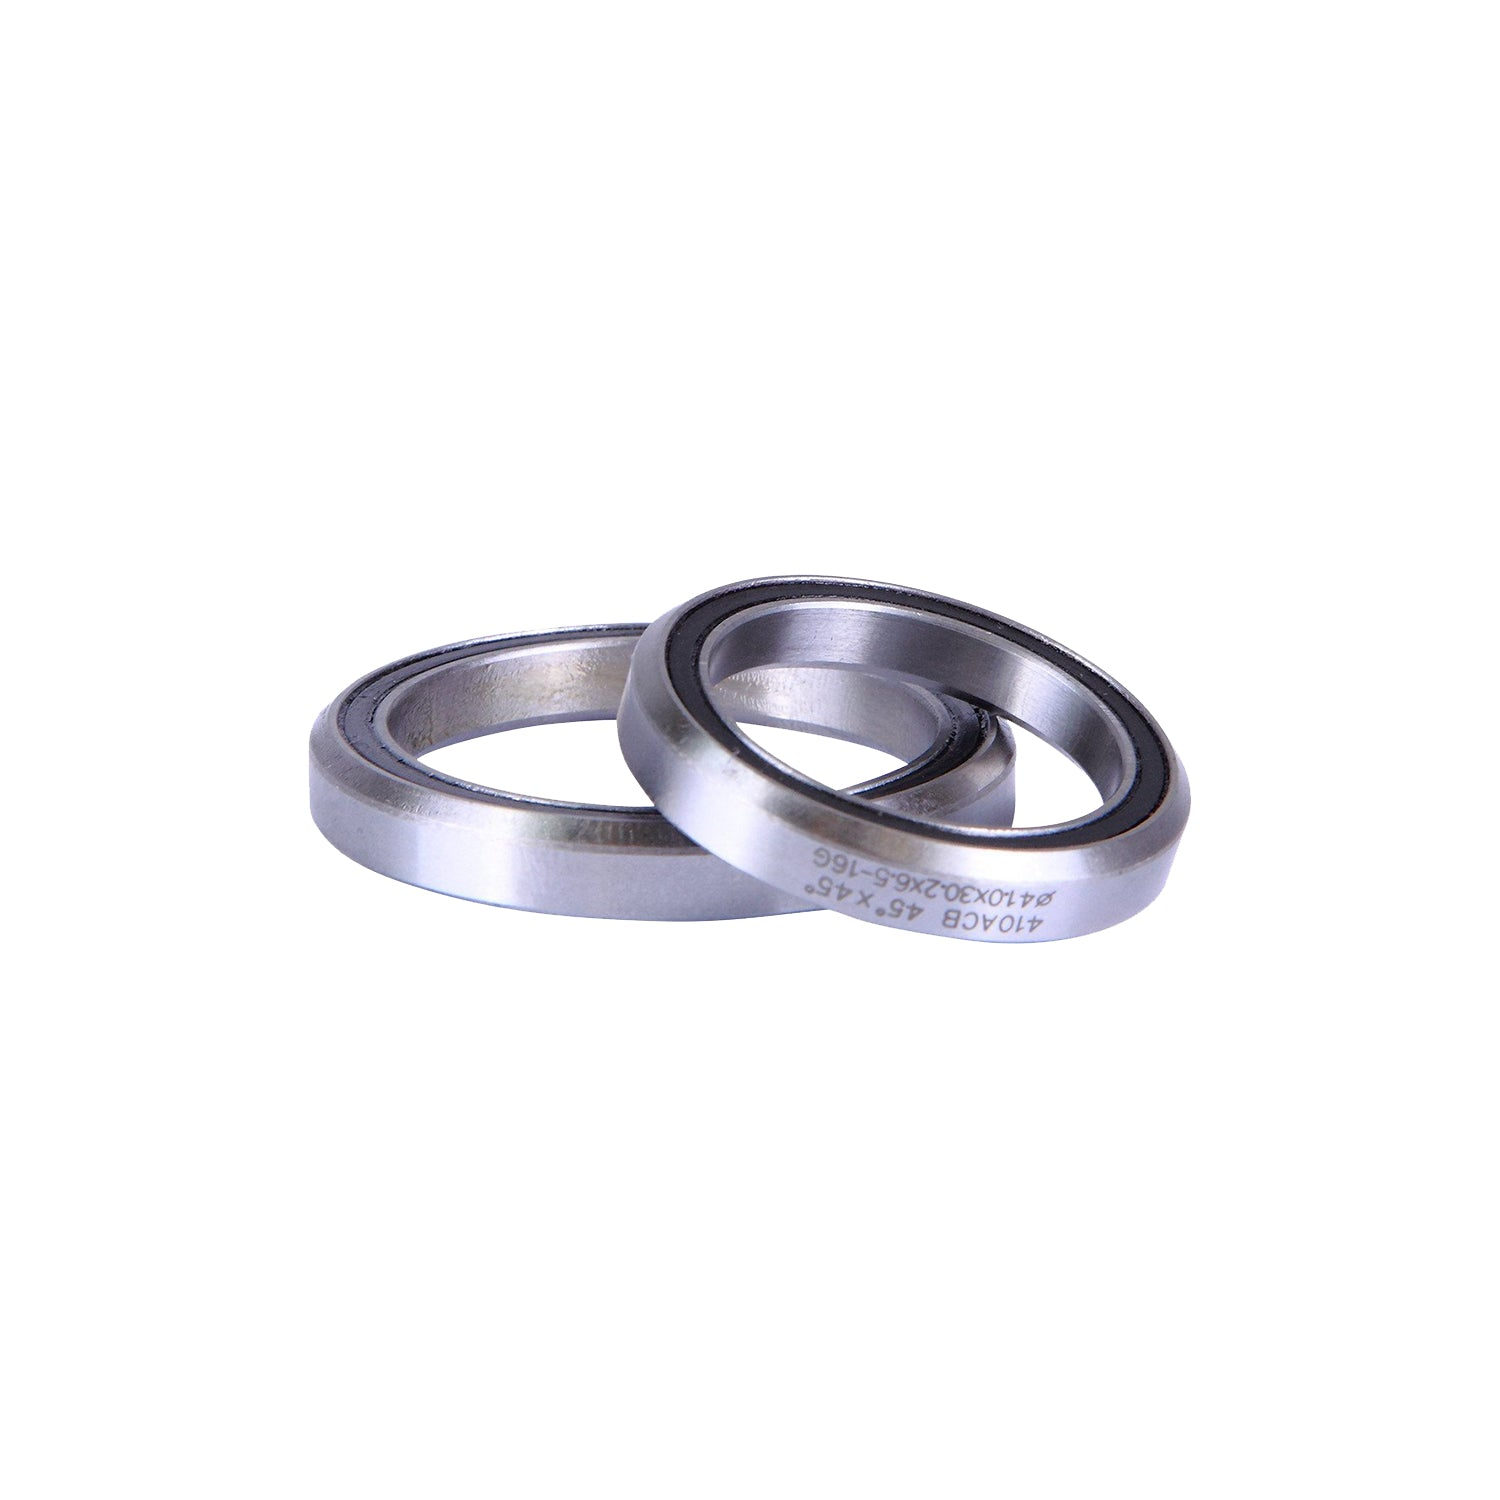 Headset Bearings (Pair)